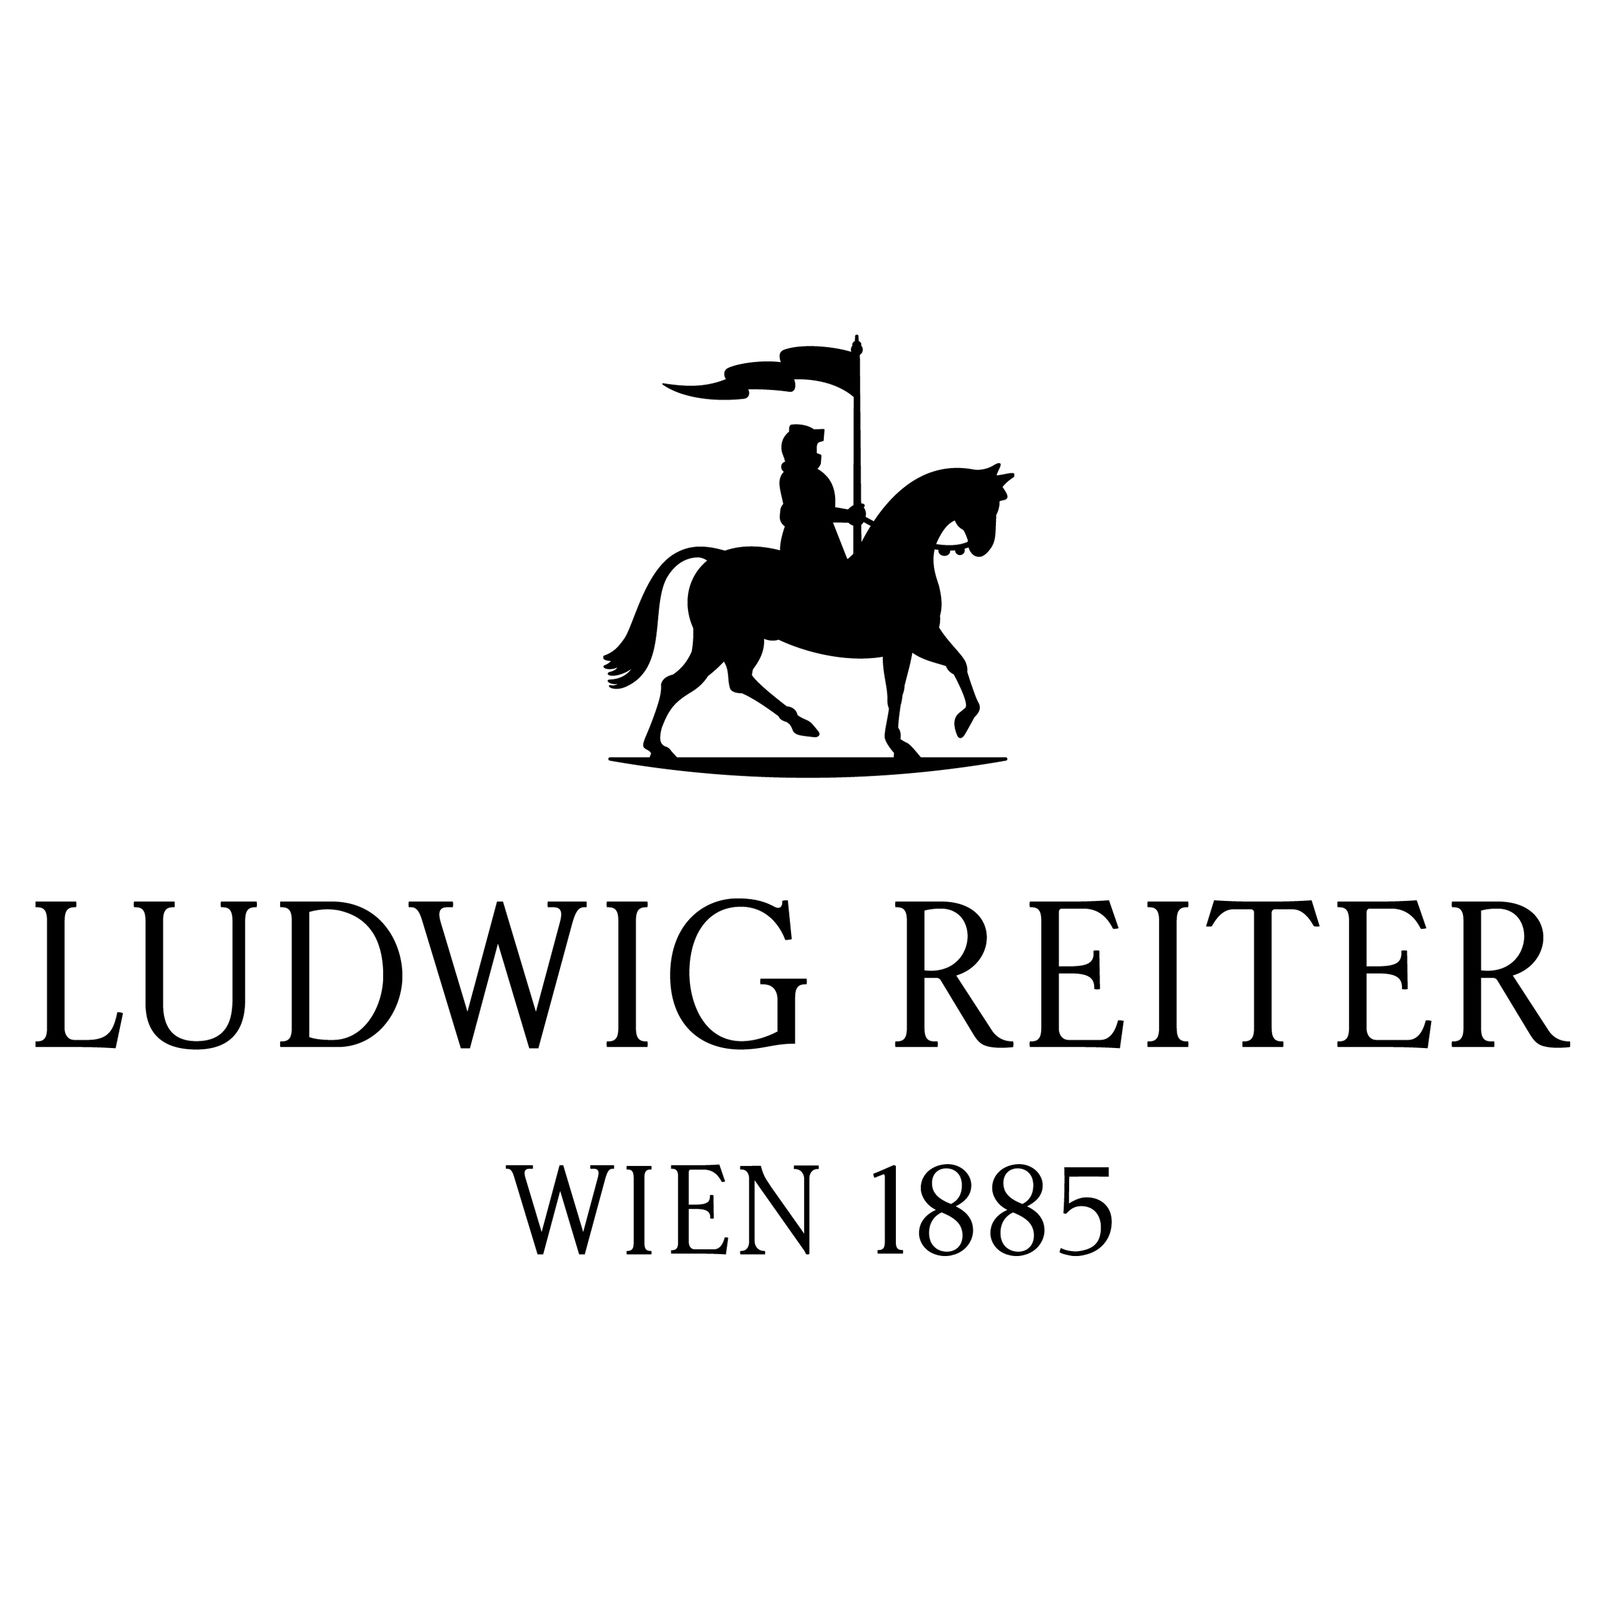 LUDWIG REITER (Afbeelding 1)